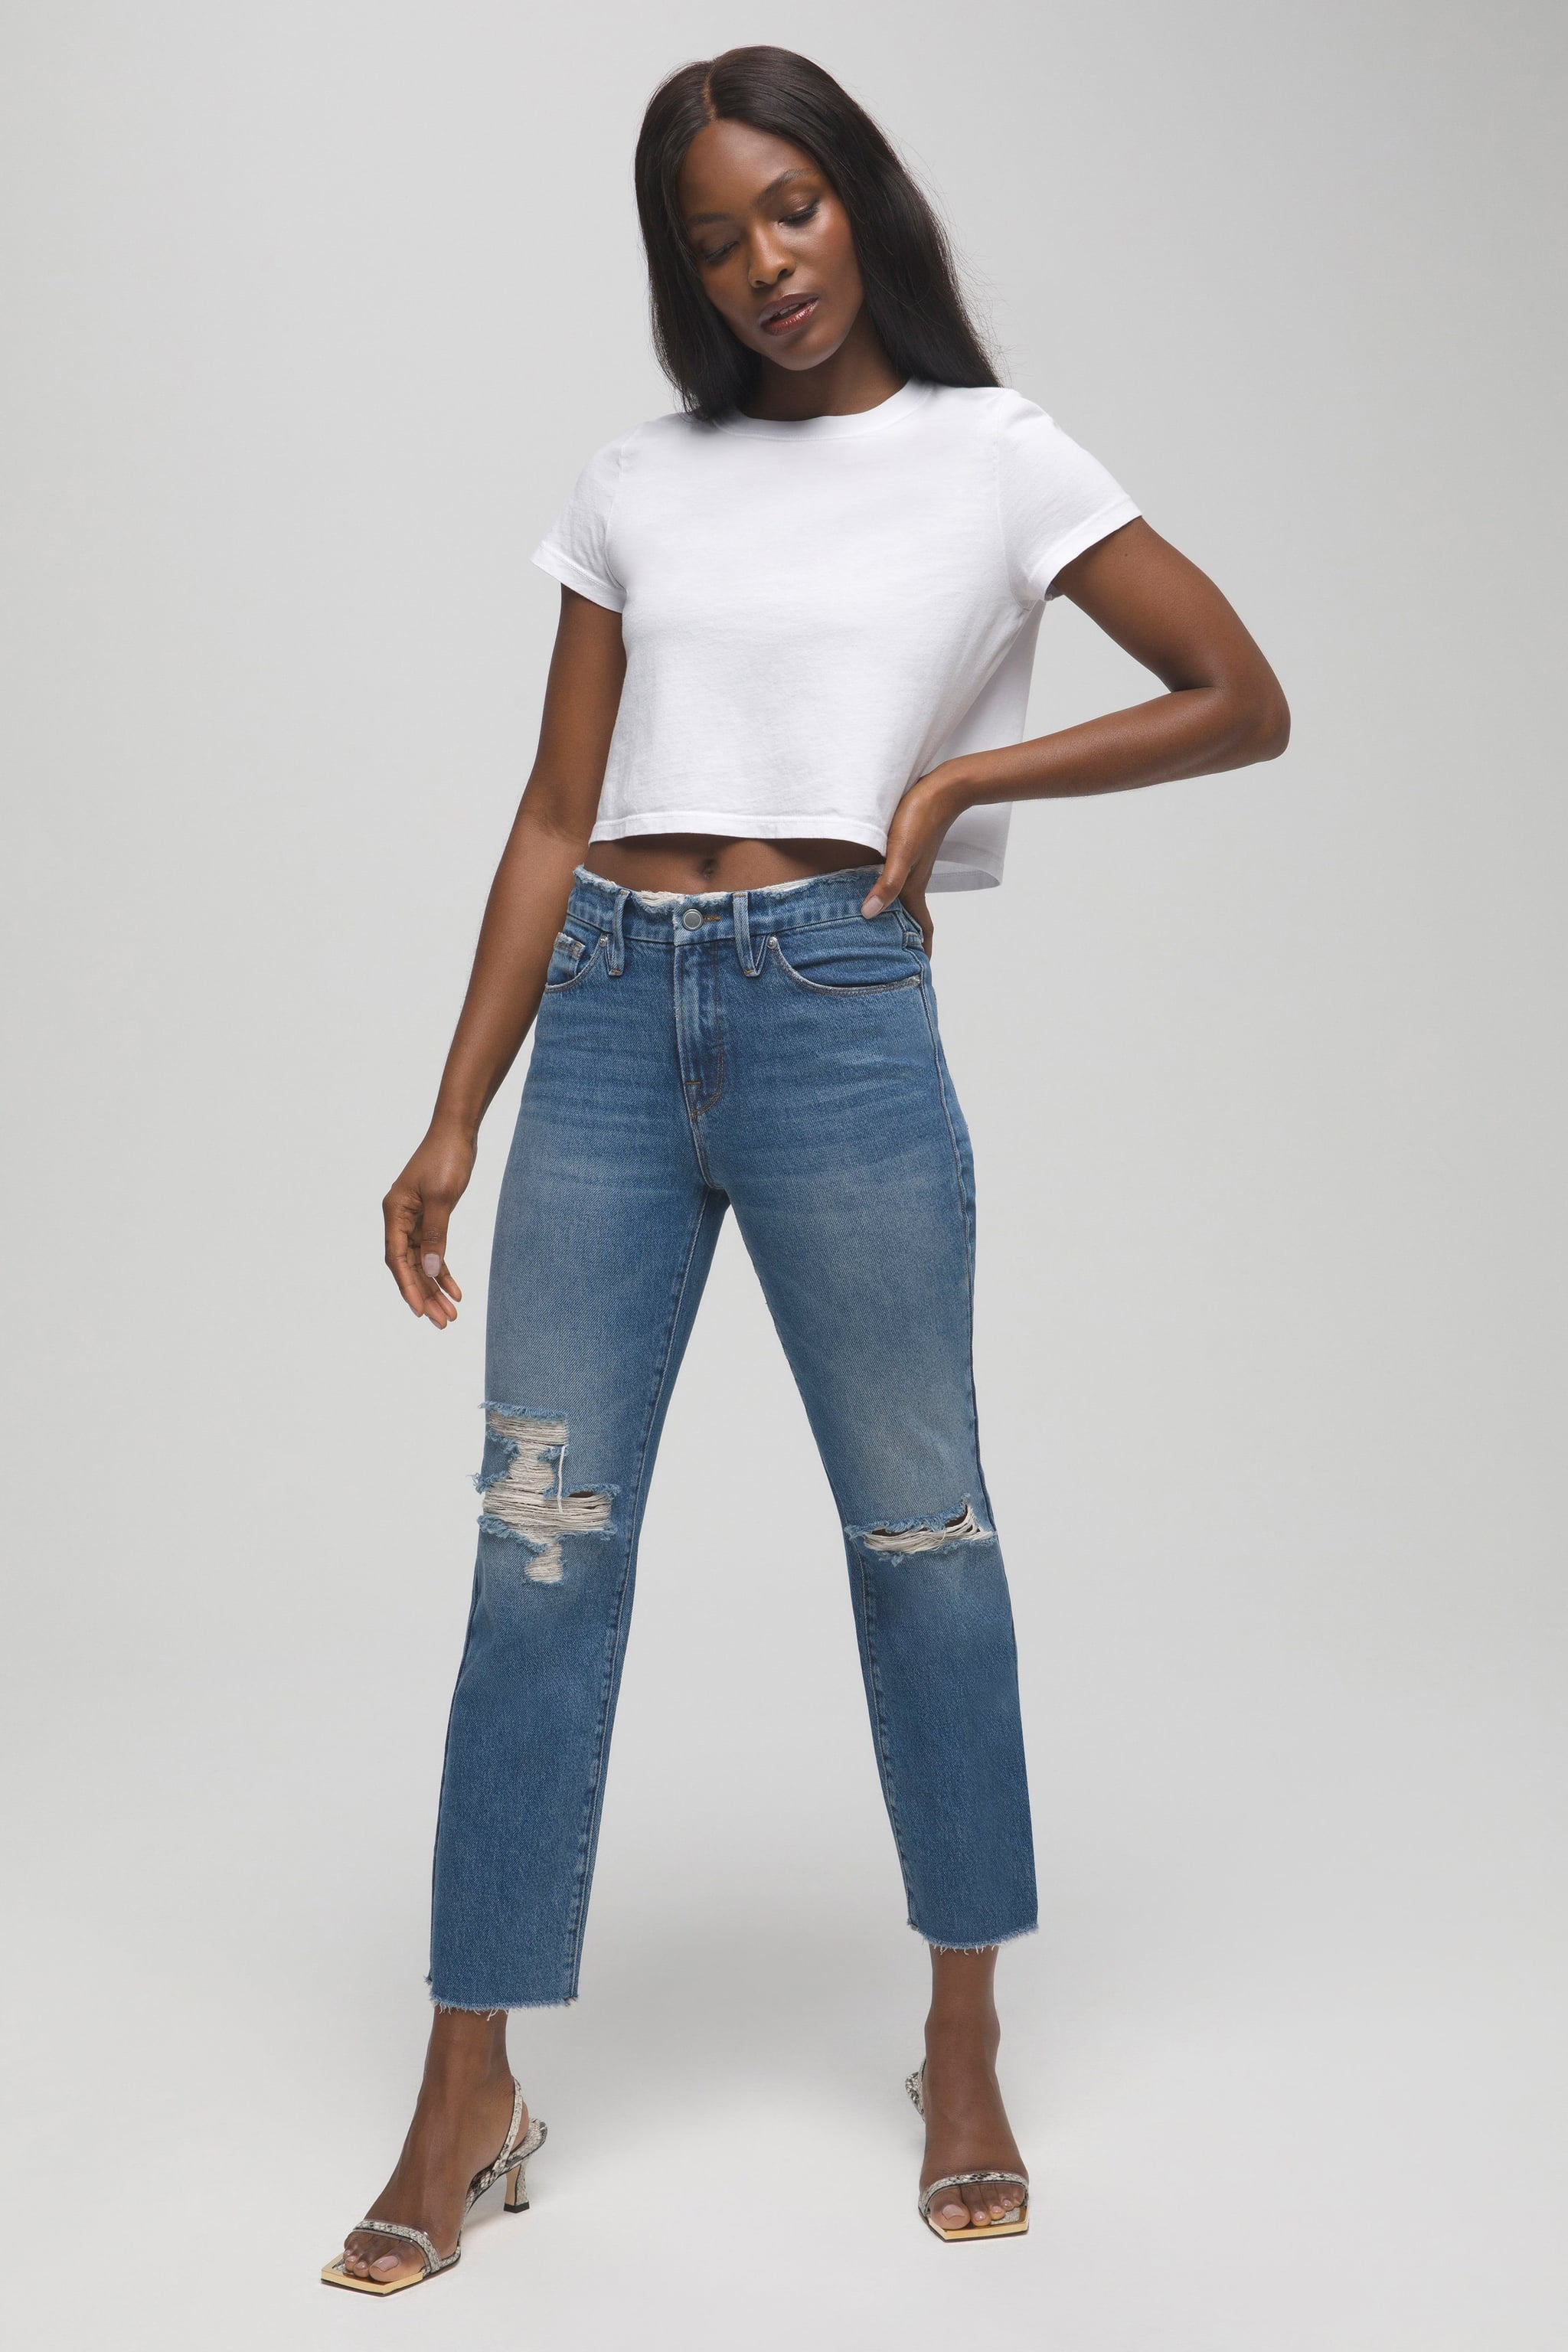 Best Jeans For All Women 2021 Guide Popsugar Fashion